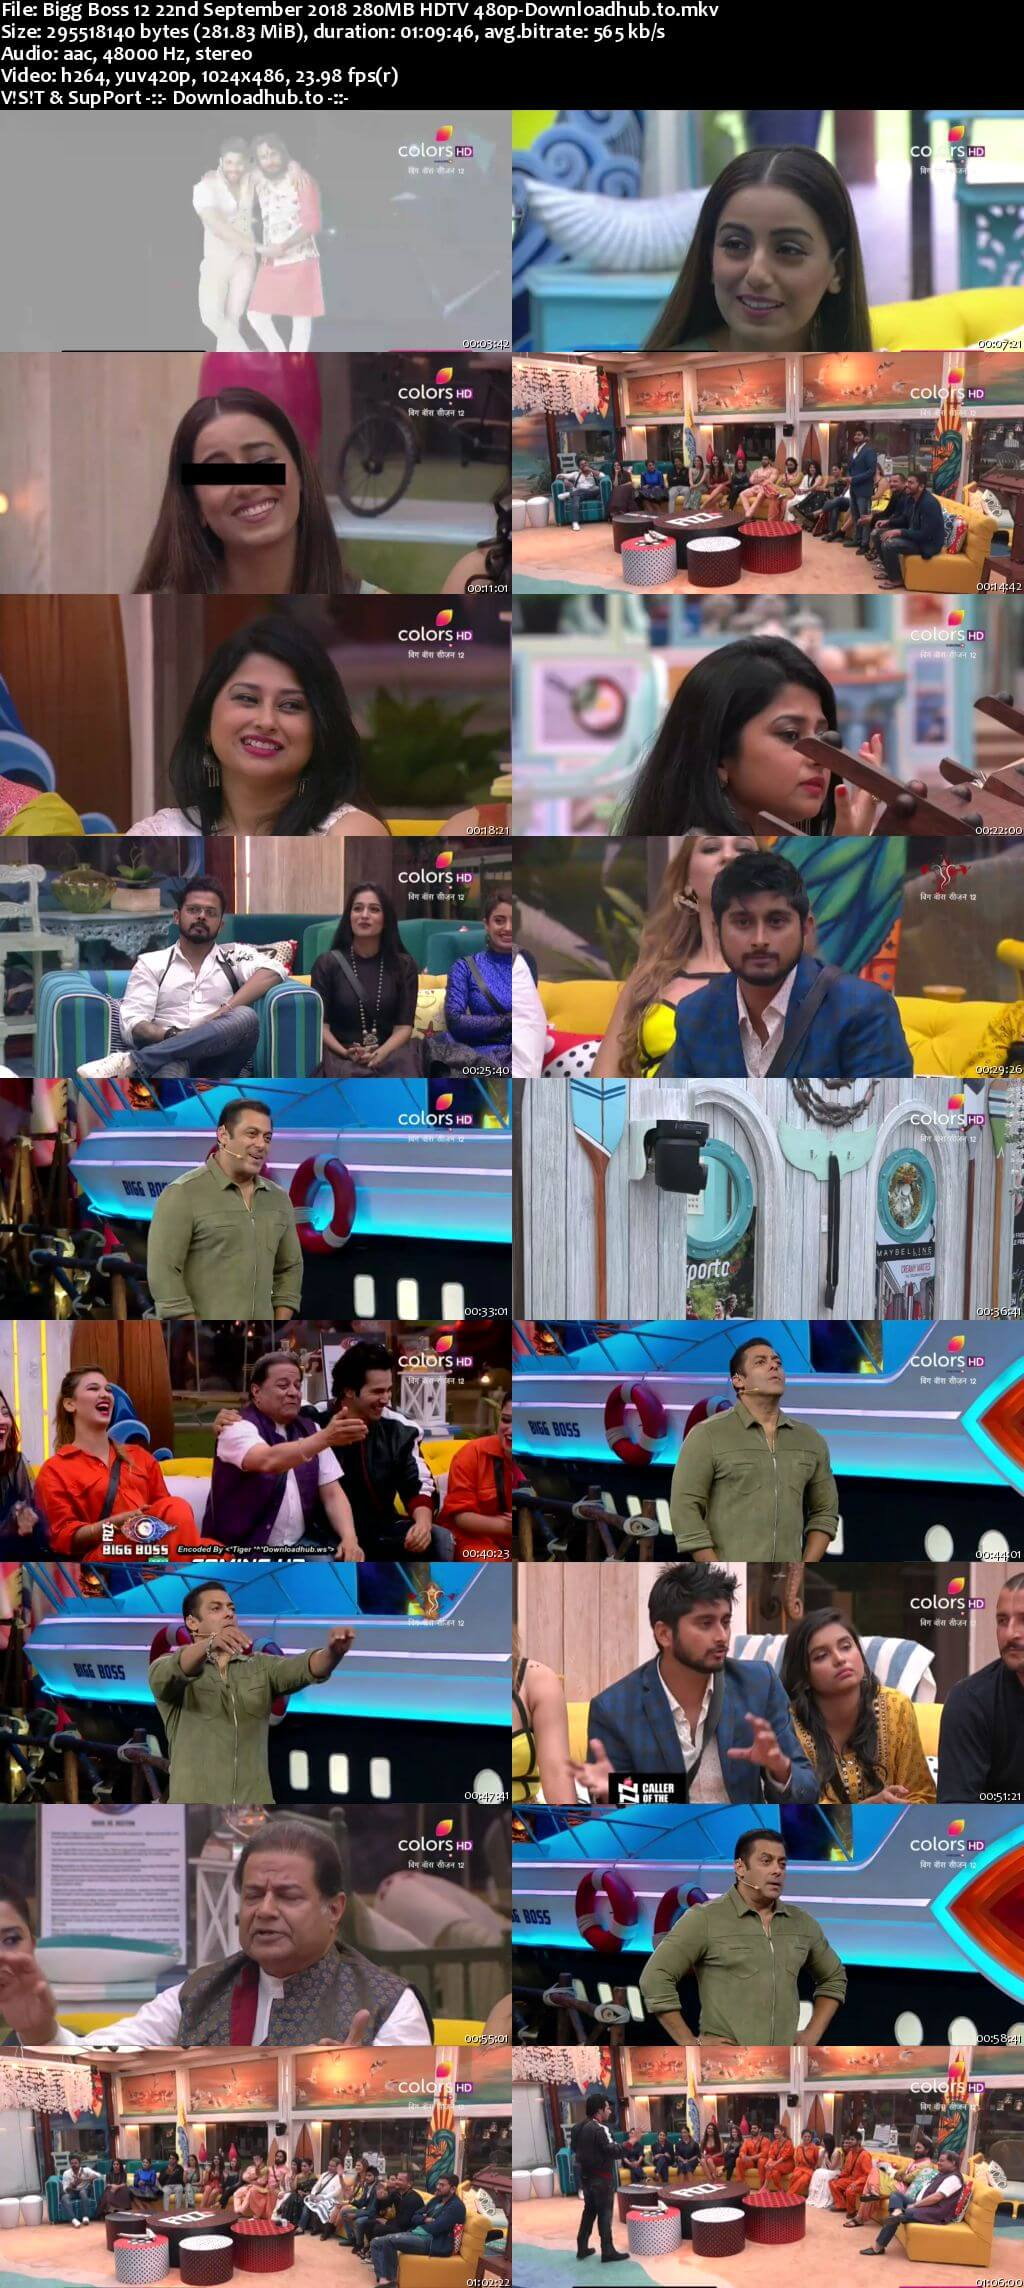 Bigg Boss 12 22 September 2018 Episode 06 HDTV 480p